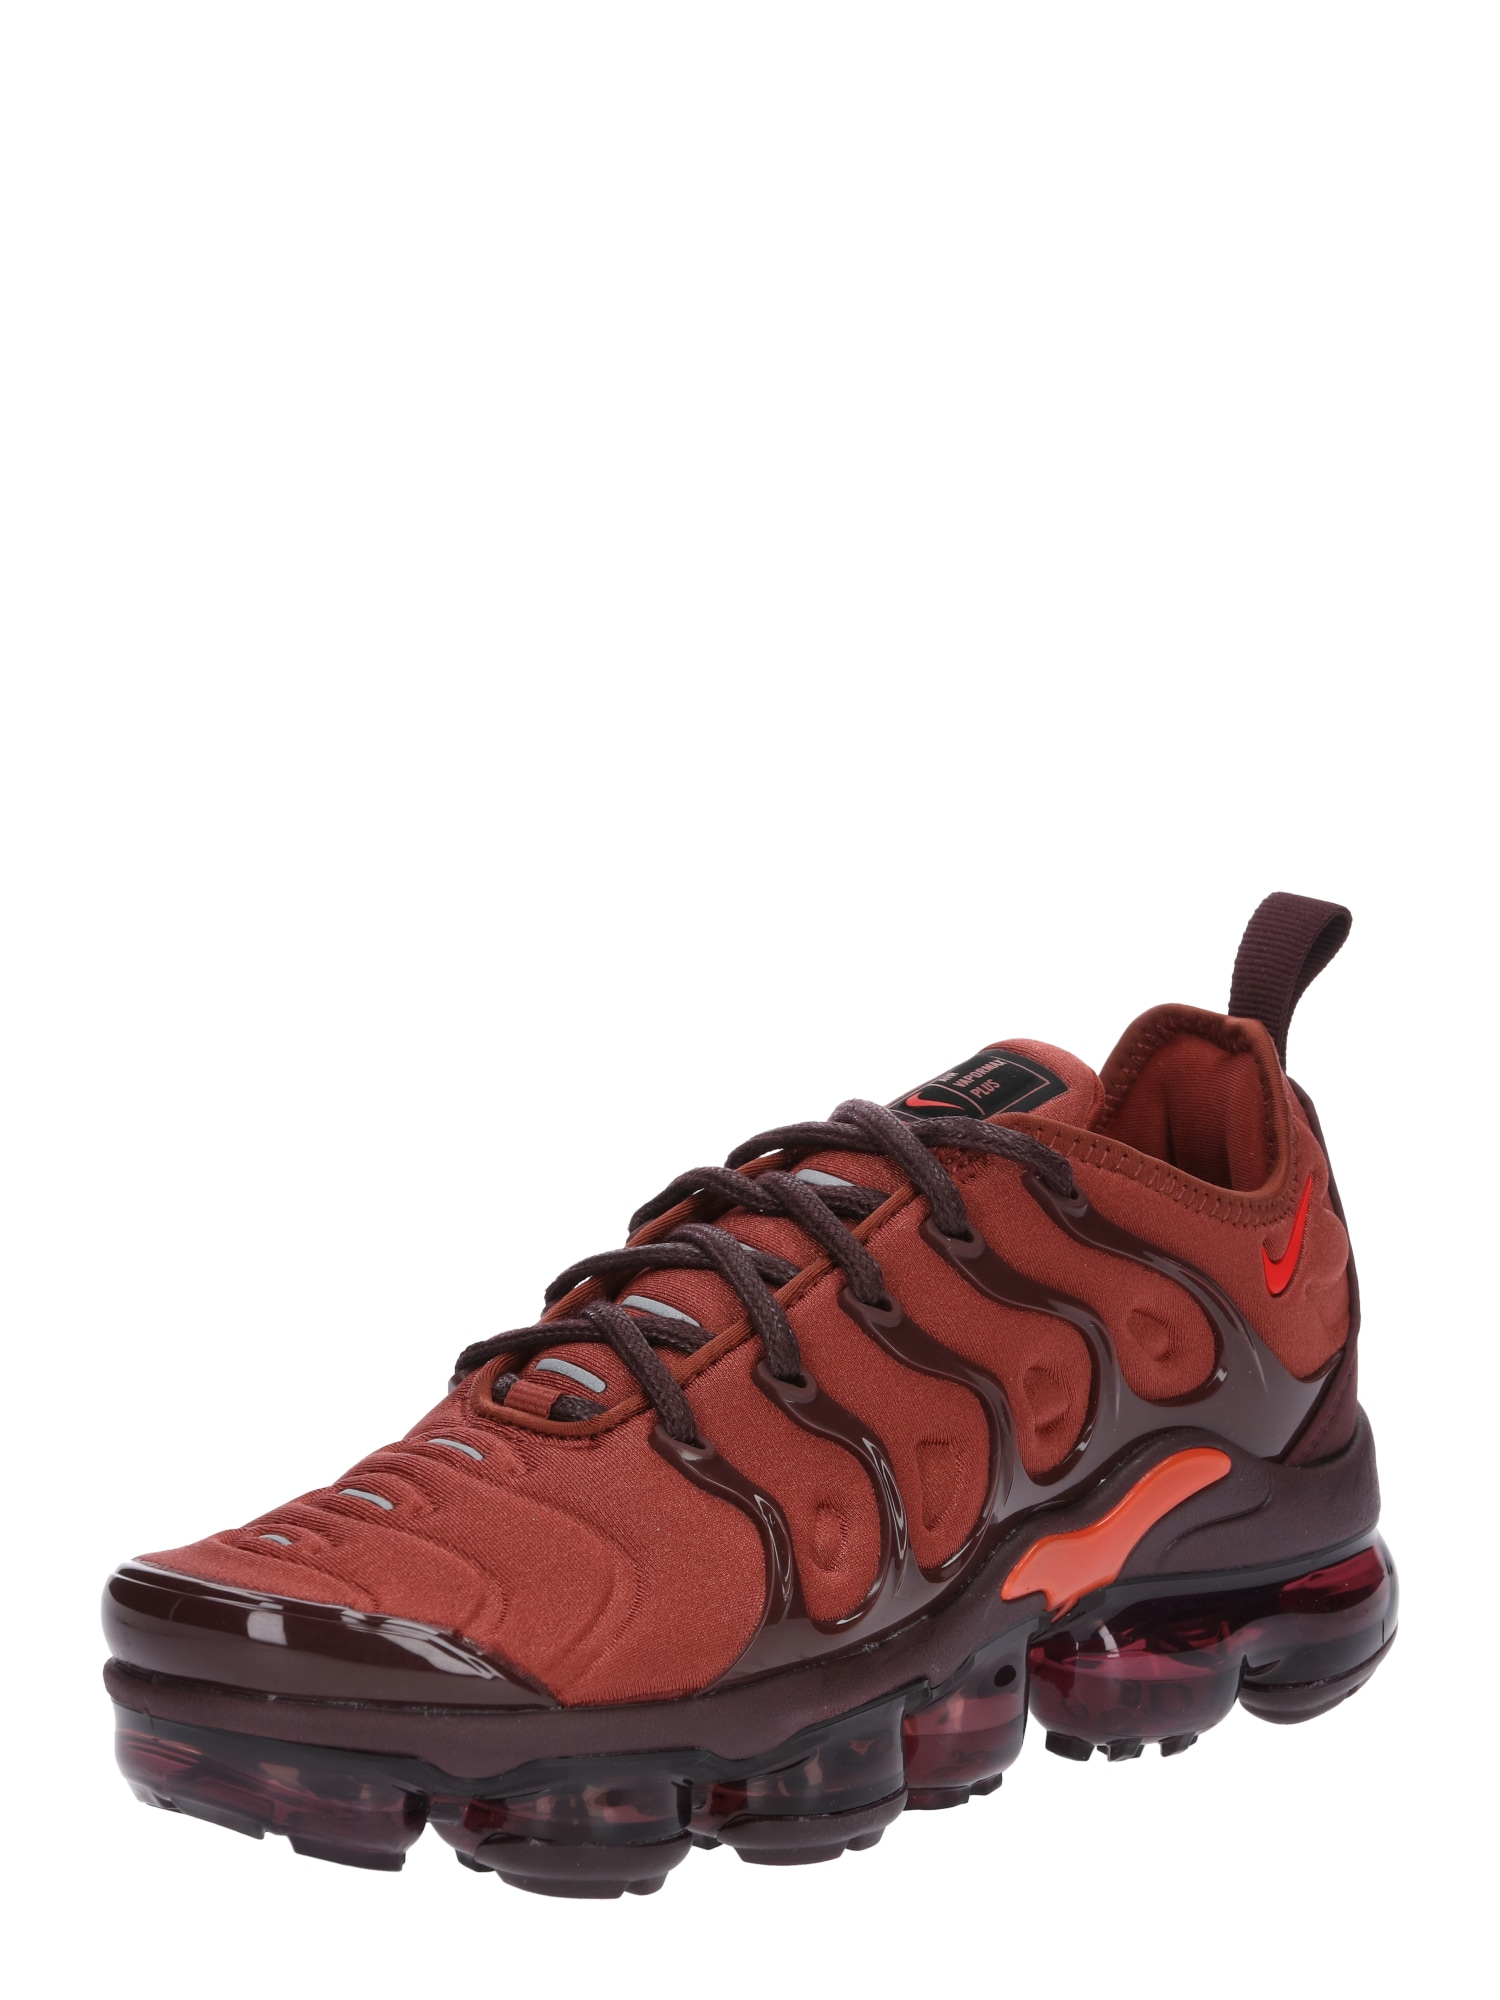 Nike Sportswear, Dames Sneakers laag 'W AIR VAPORMAX PLUS', rood / bordeaux